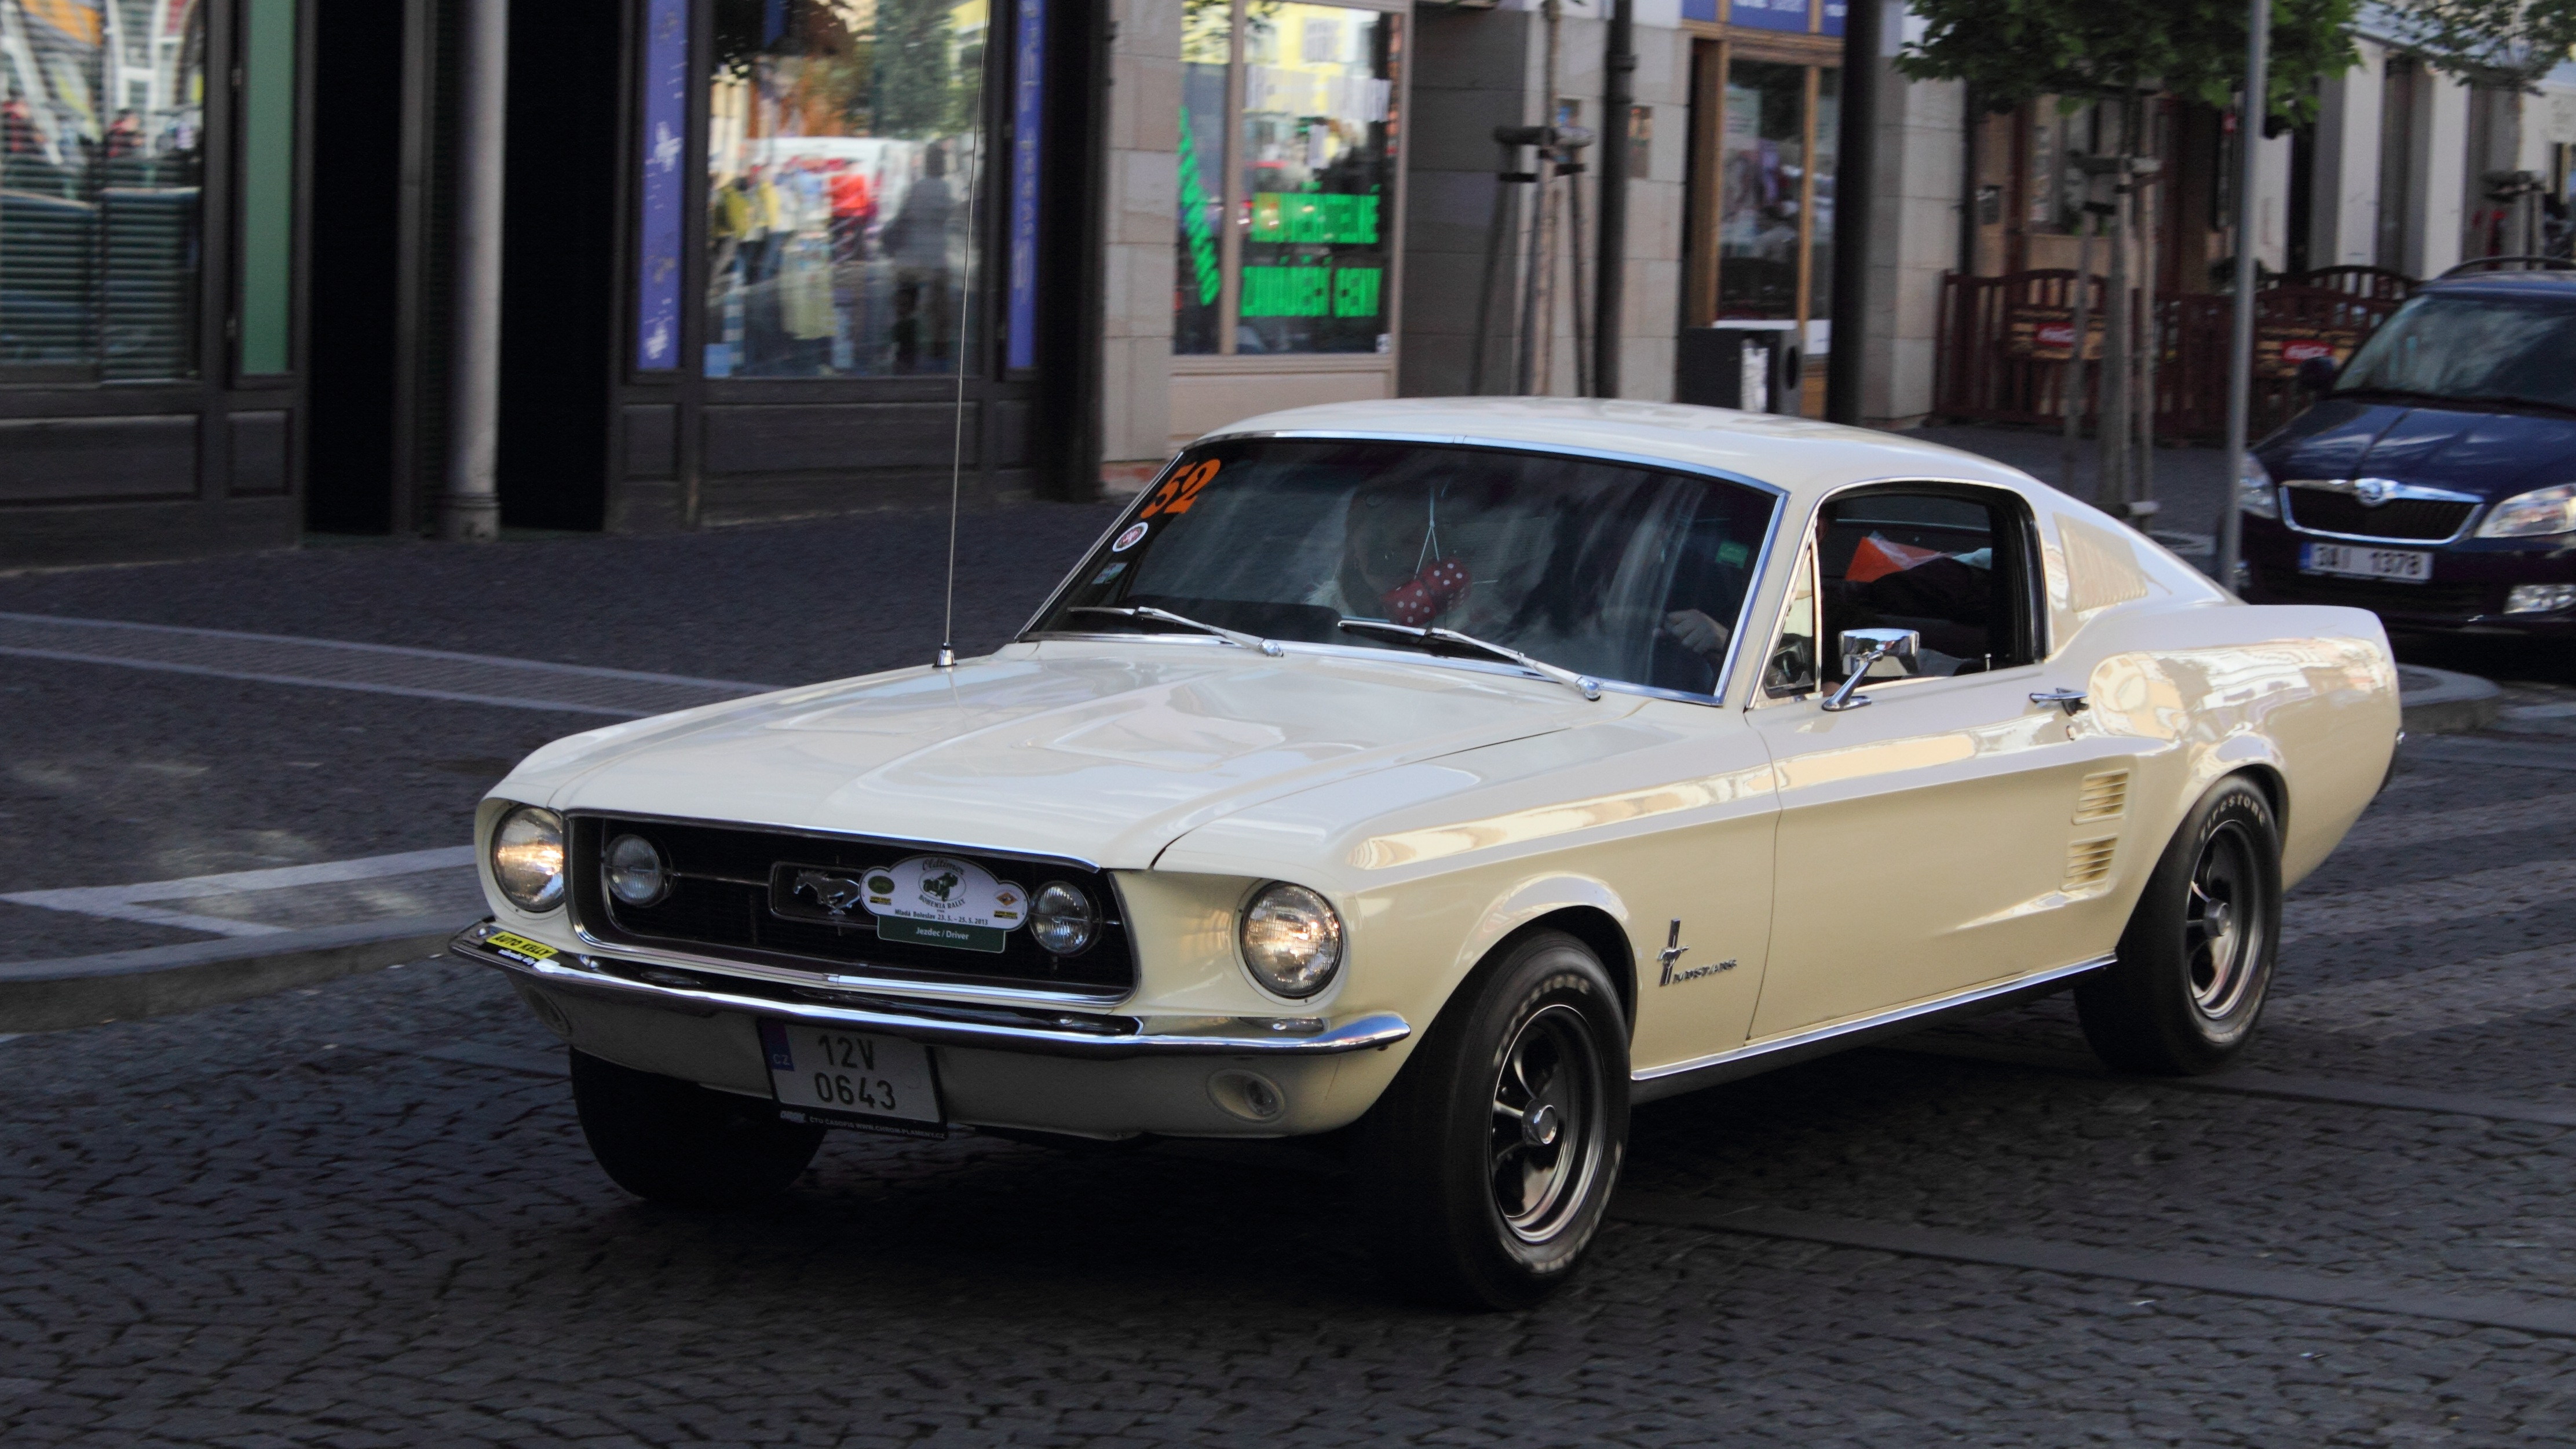 file ford mustang fastback 2013 oldtimer bohemia rally jpg. Black Bedroom Furniture Sets. Home Design Ideas